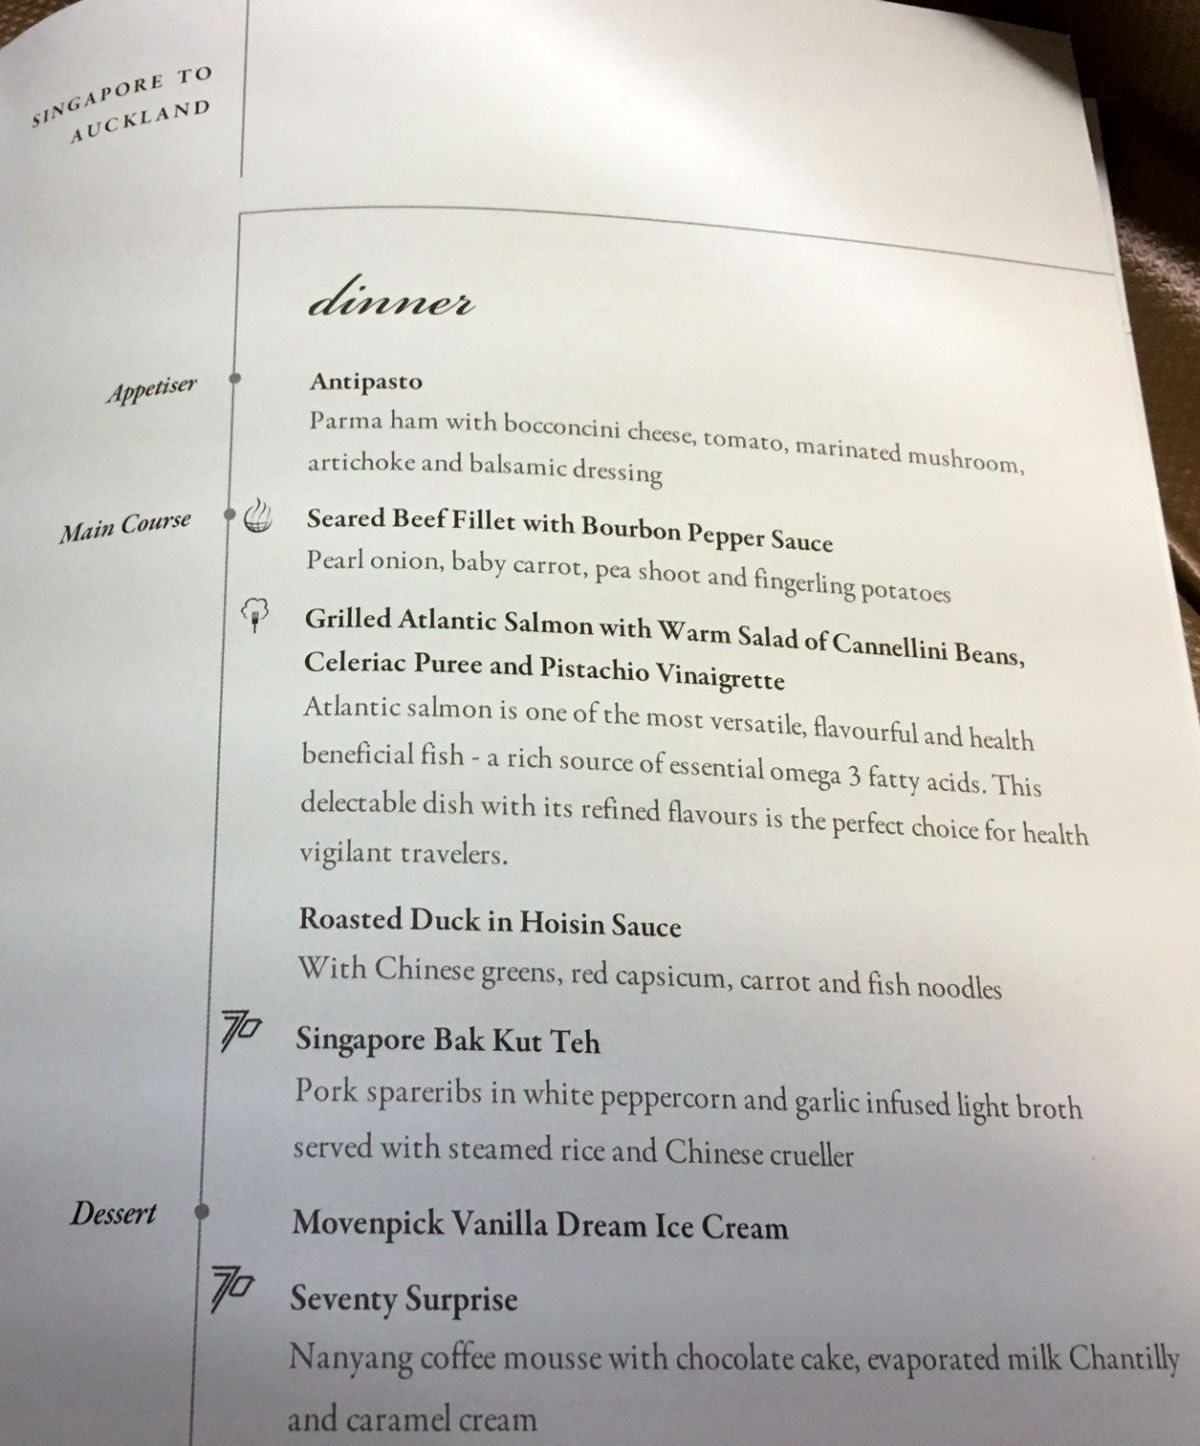 Singapore Airlines Business Class Dinner Menu SIN-AKL